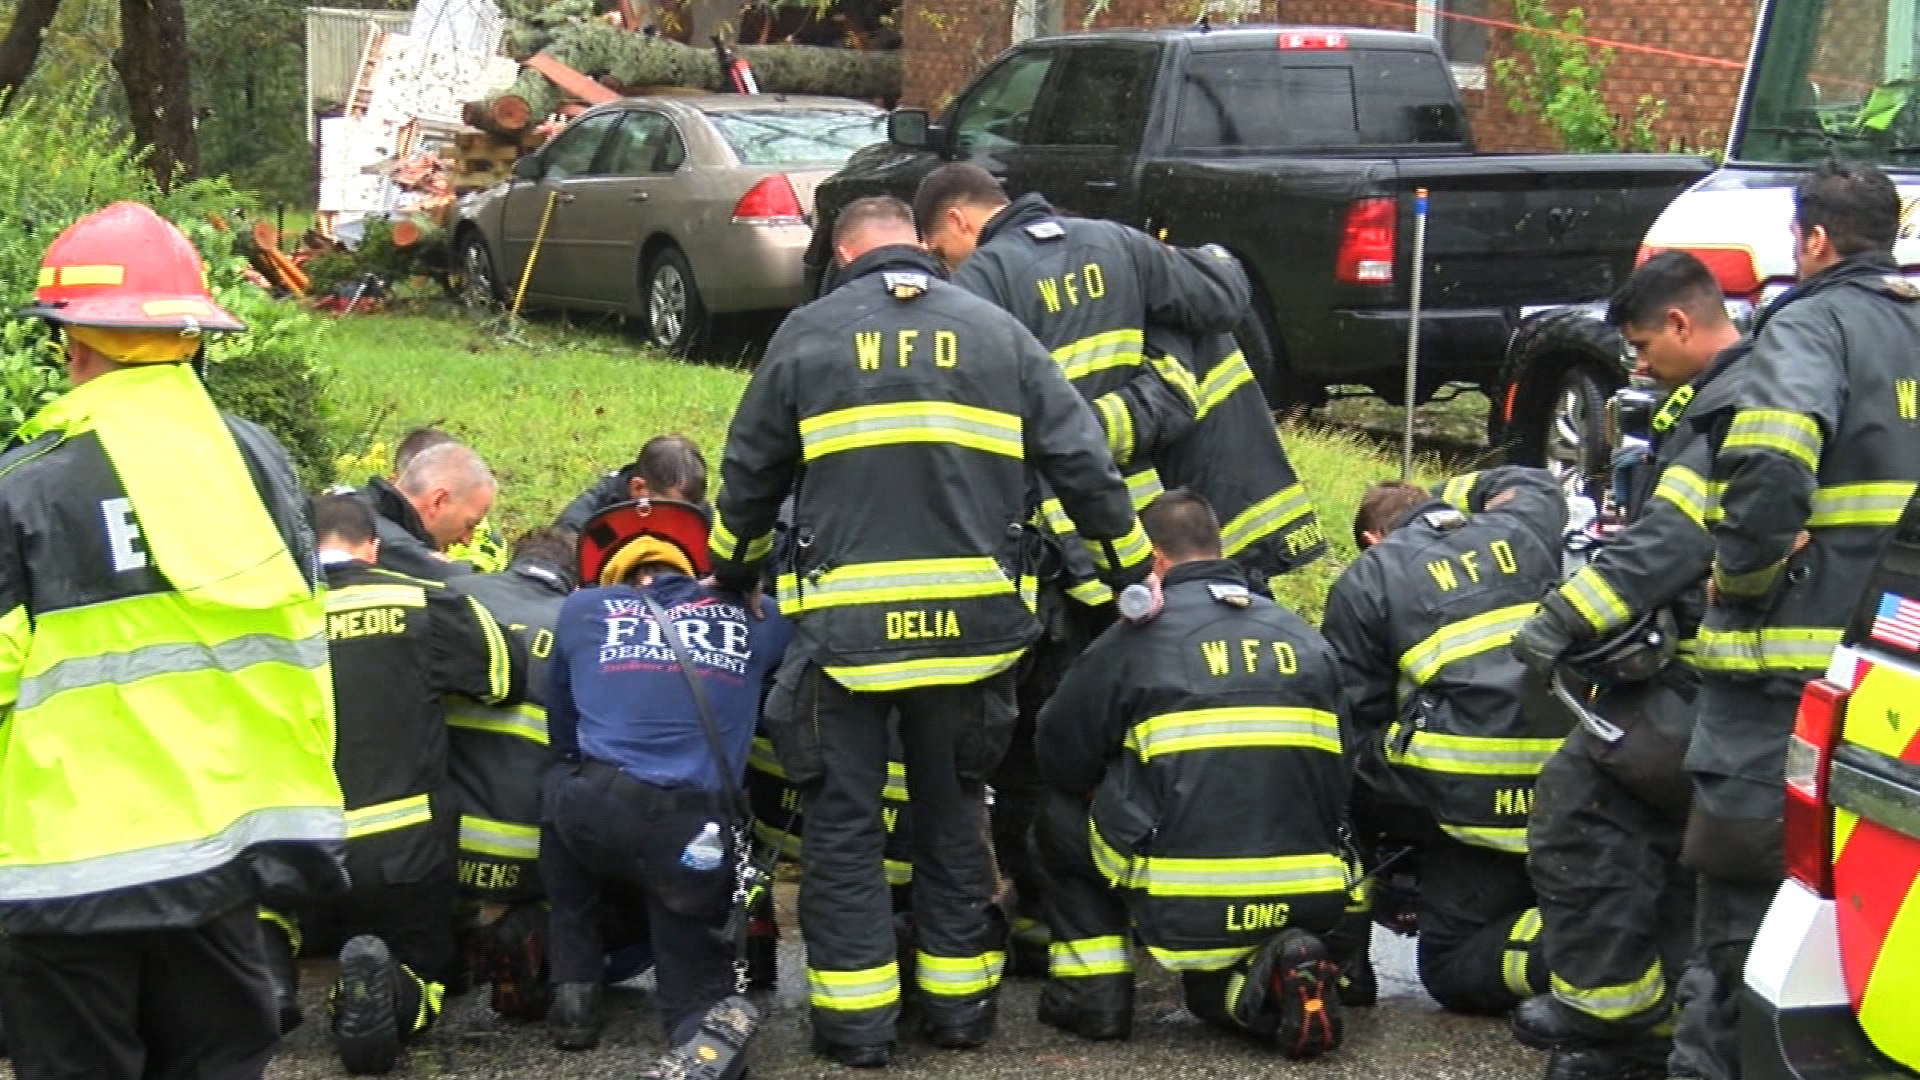 Firefighters pray for fallen Florence victims